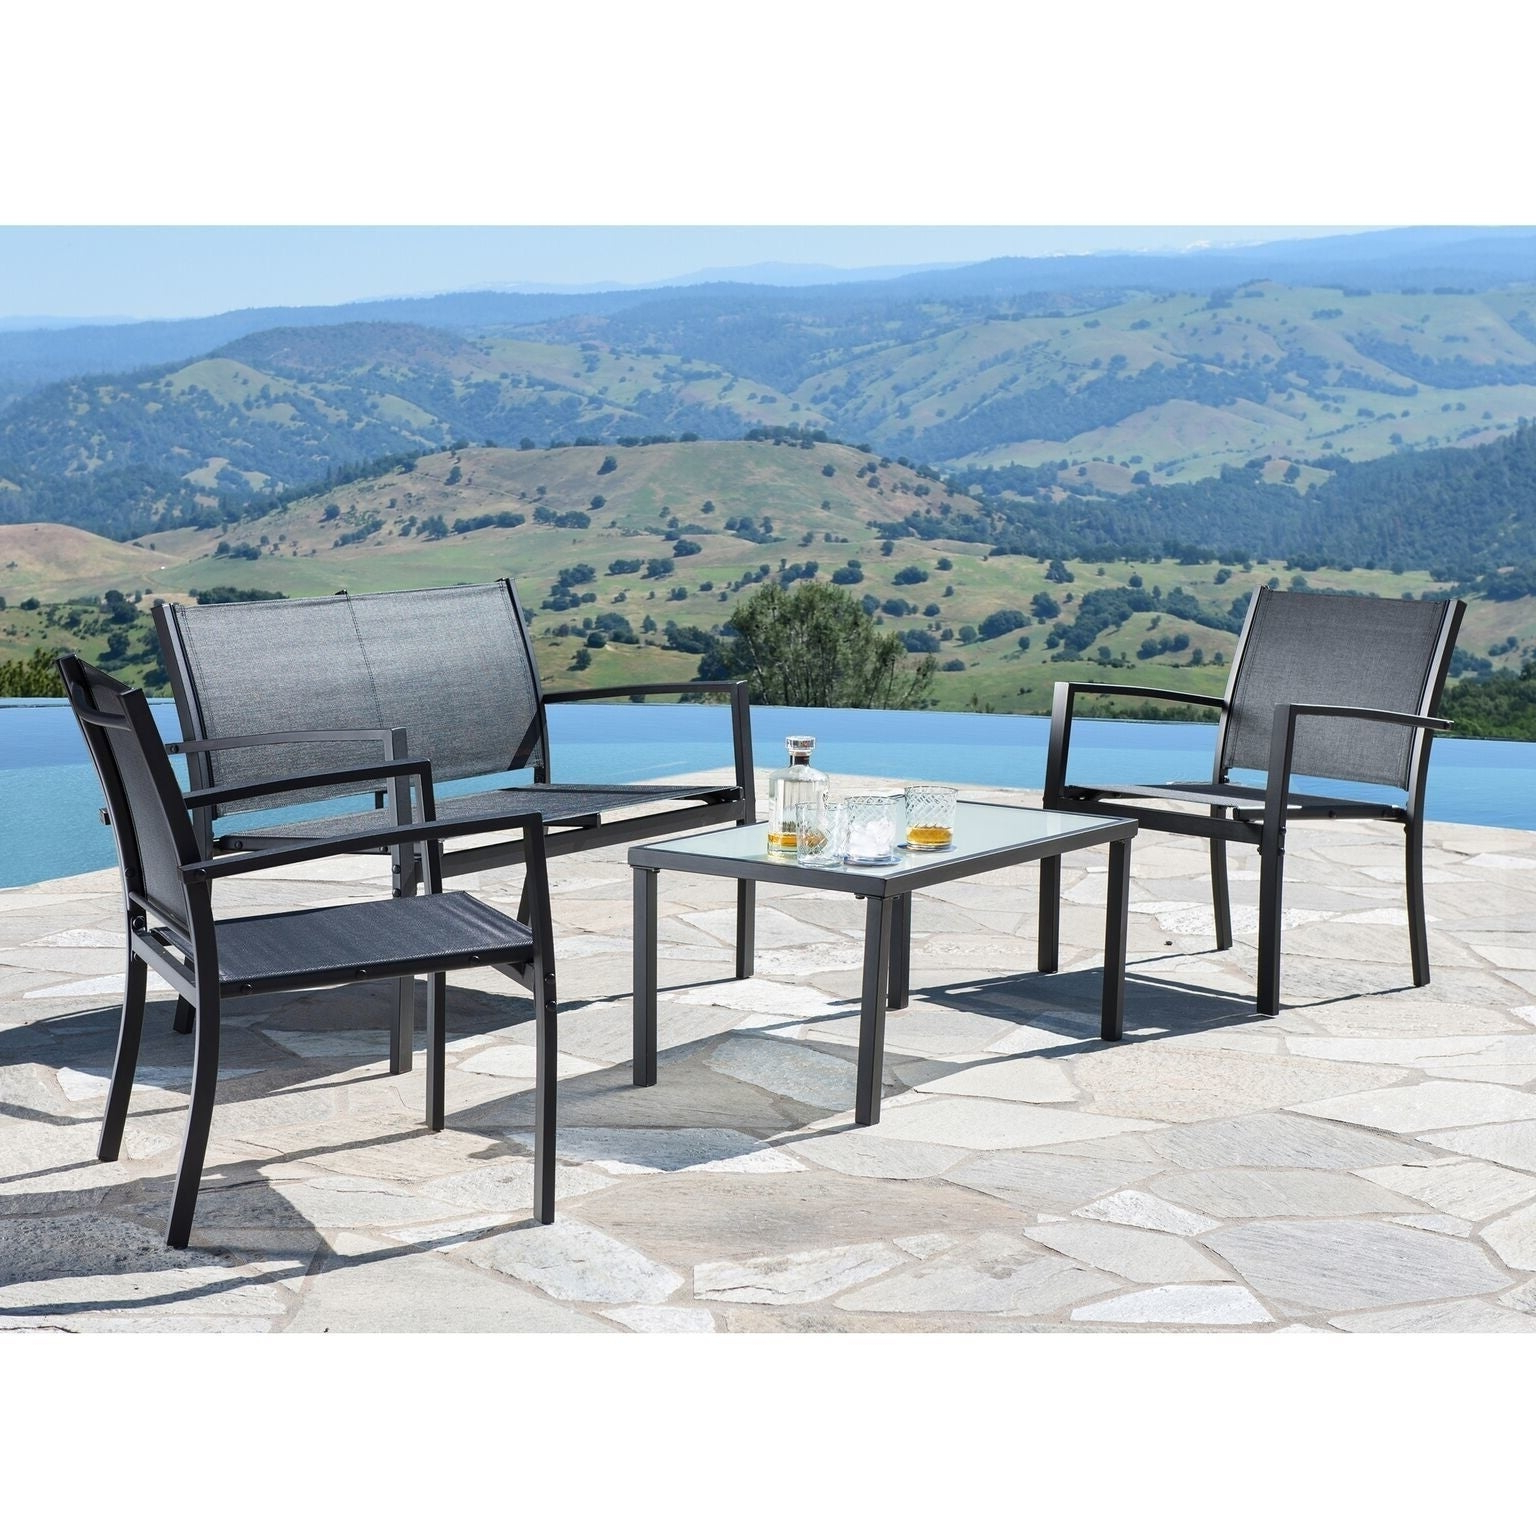 Famous Salton Outdoor Aluminum Chaise Lounges With 4Th Of July Outdoor Furniture Sale 2019 – Bestproductlists (View 5 of 25)